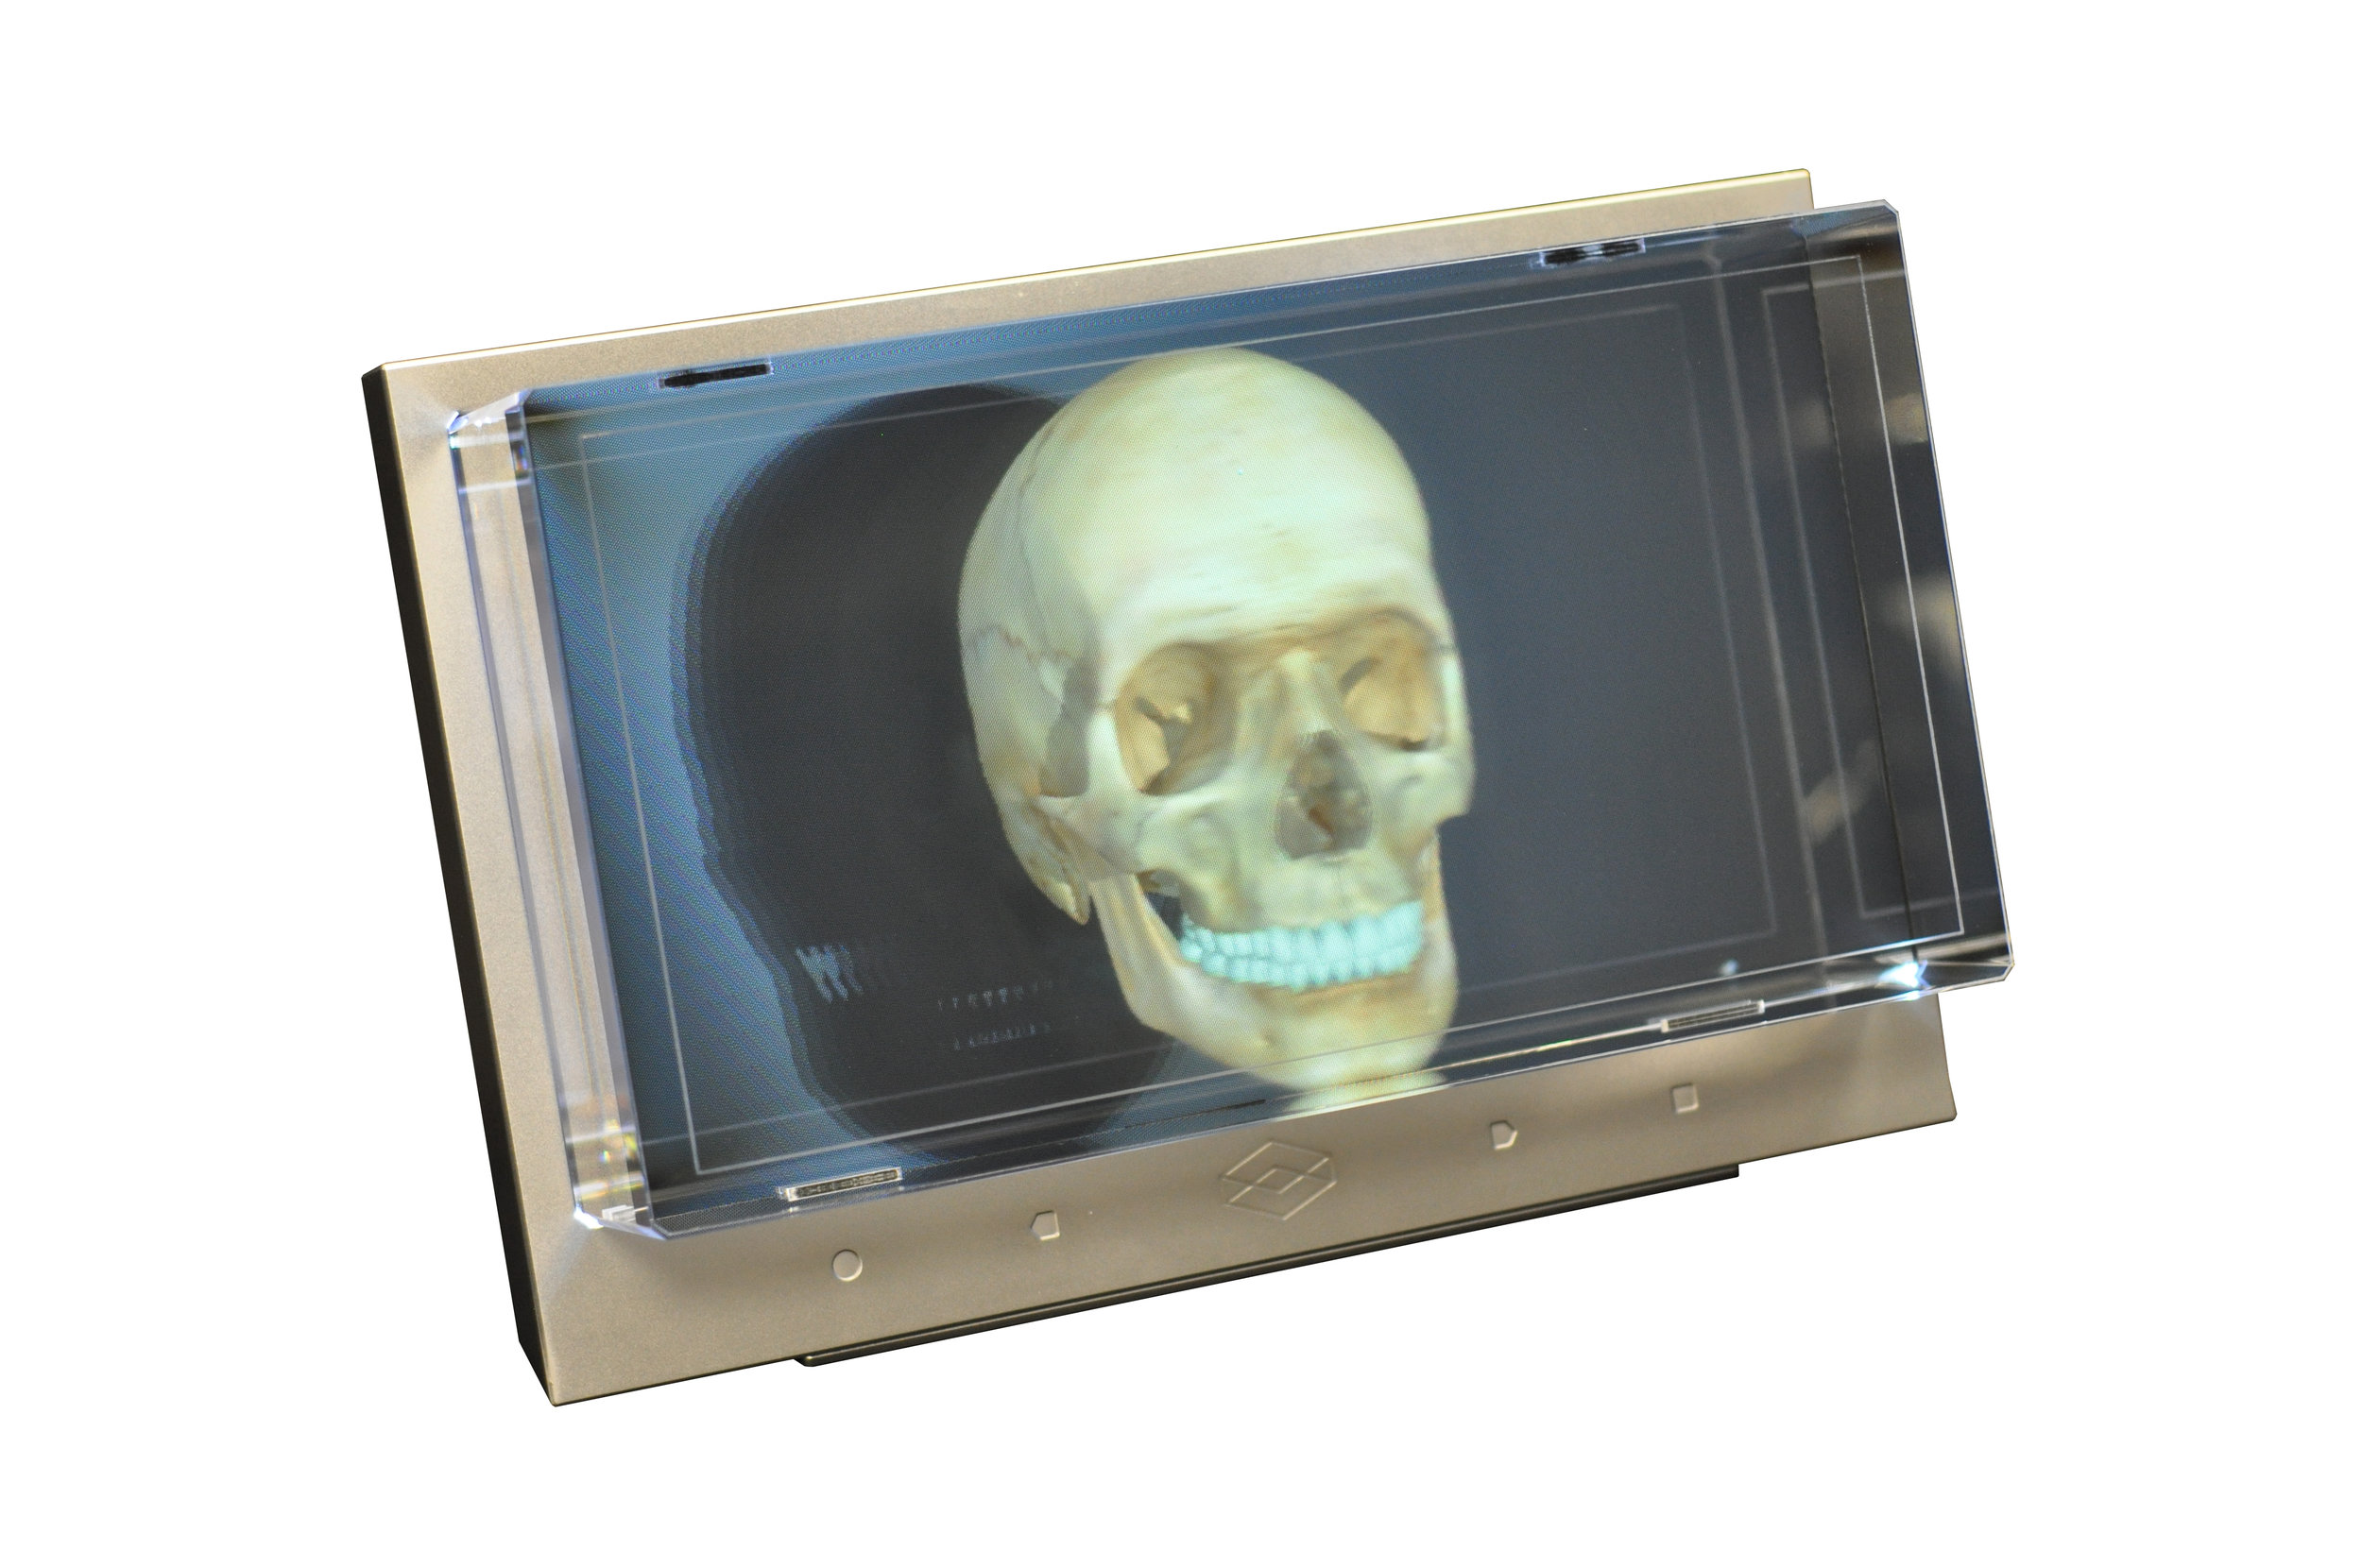 Actual photo of the display showing a 3D model